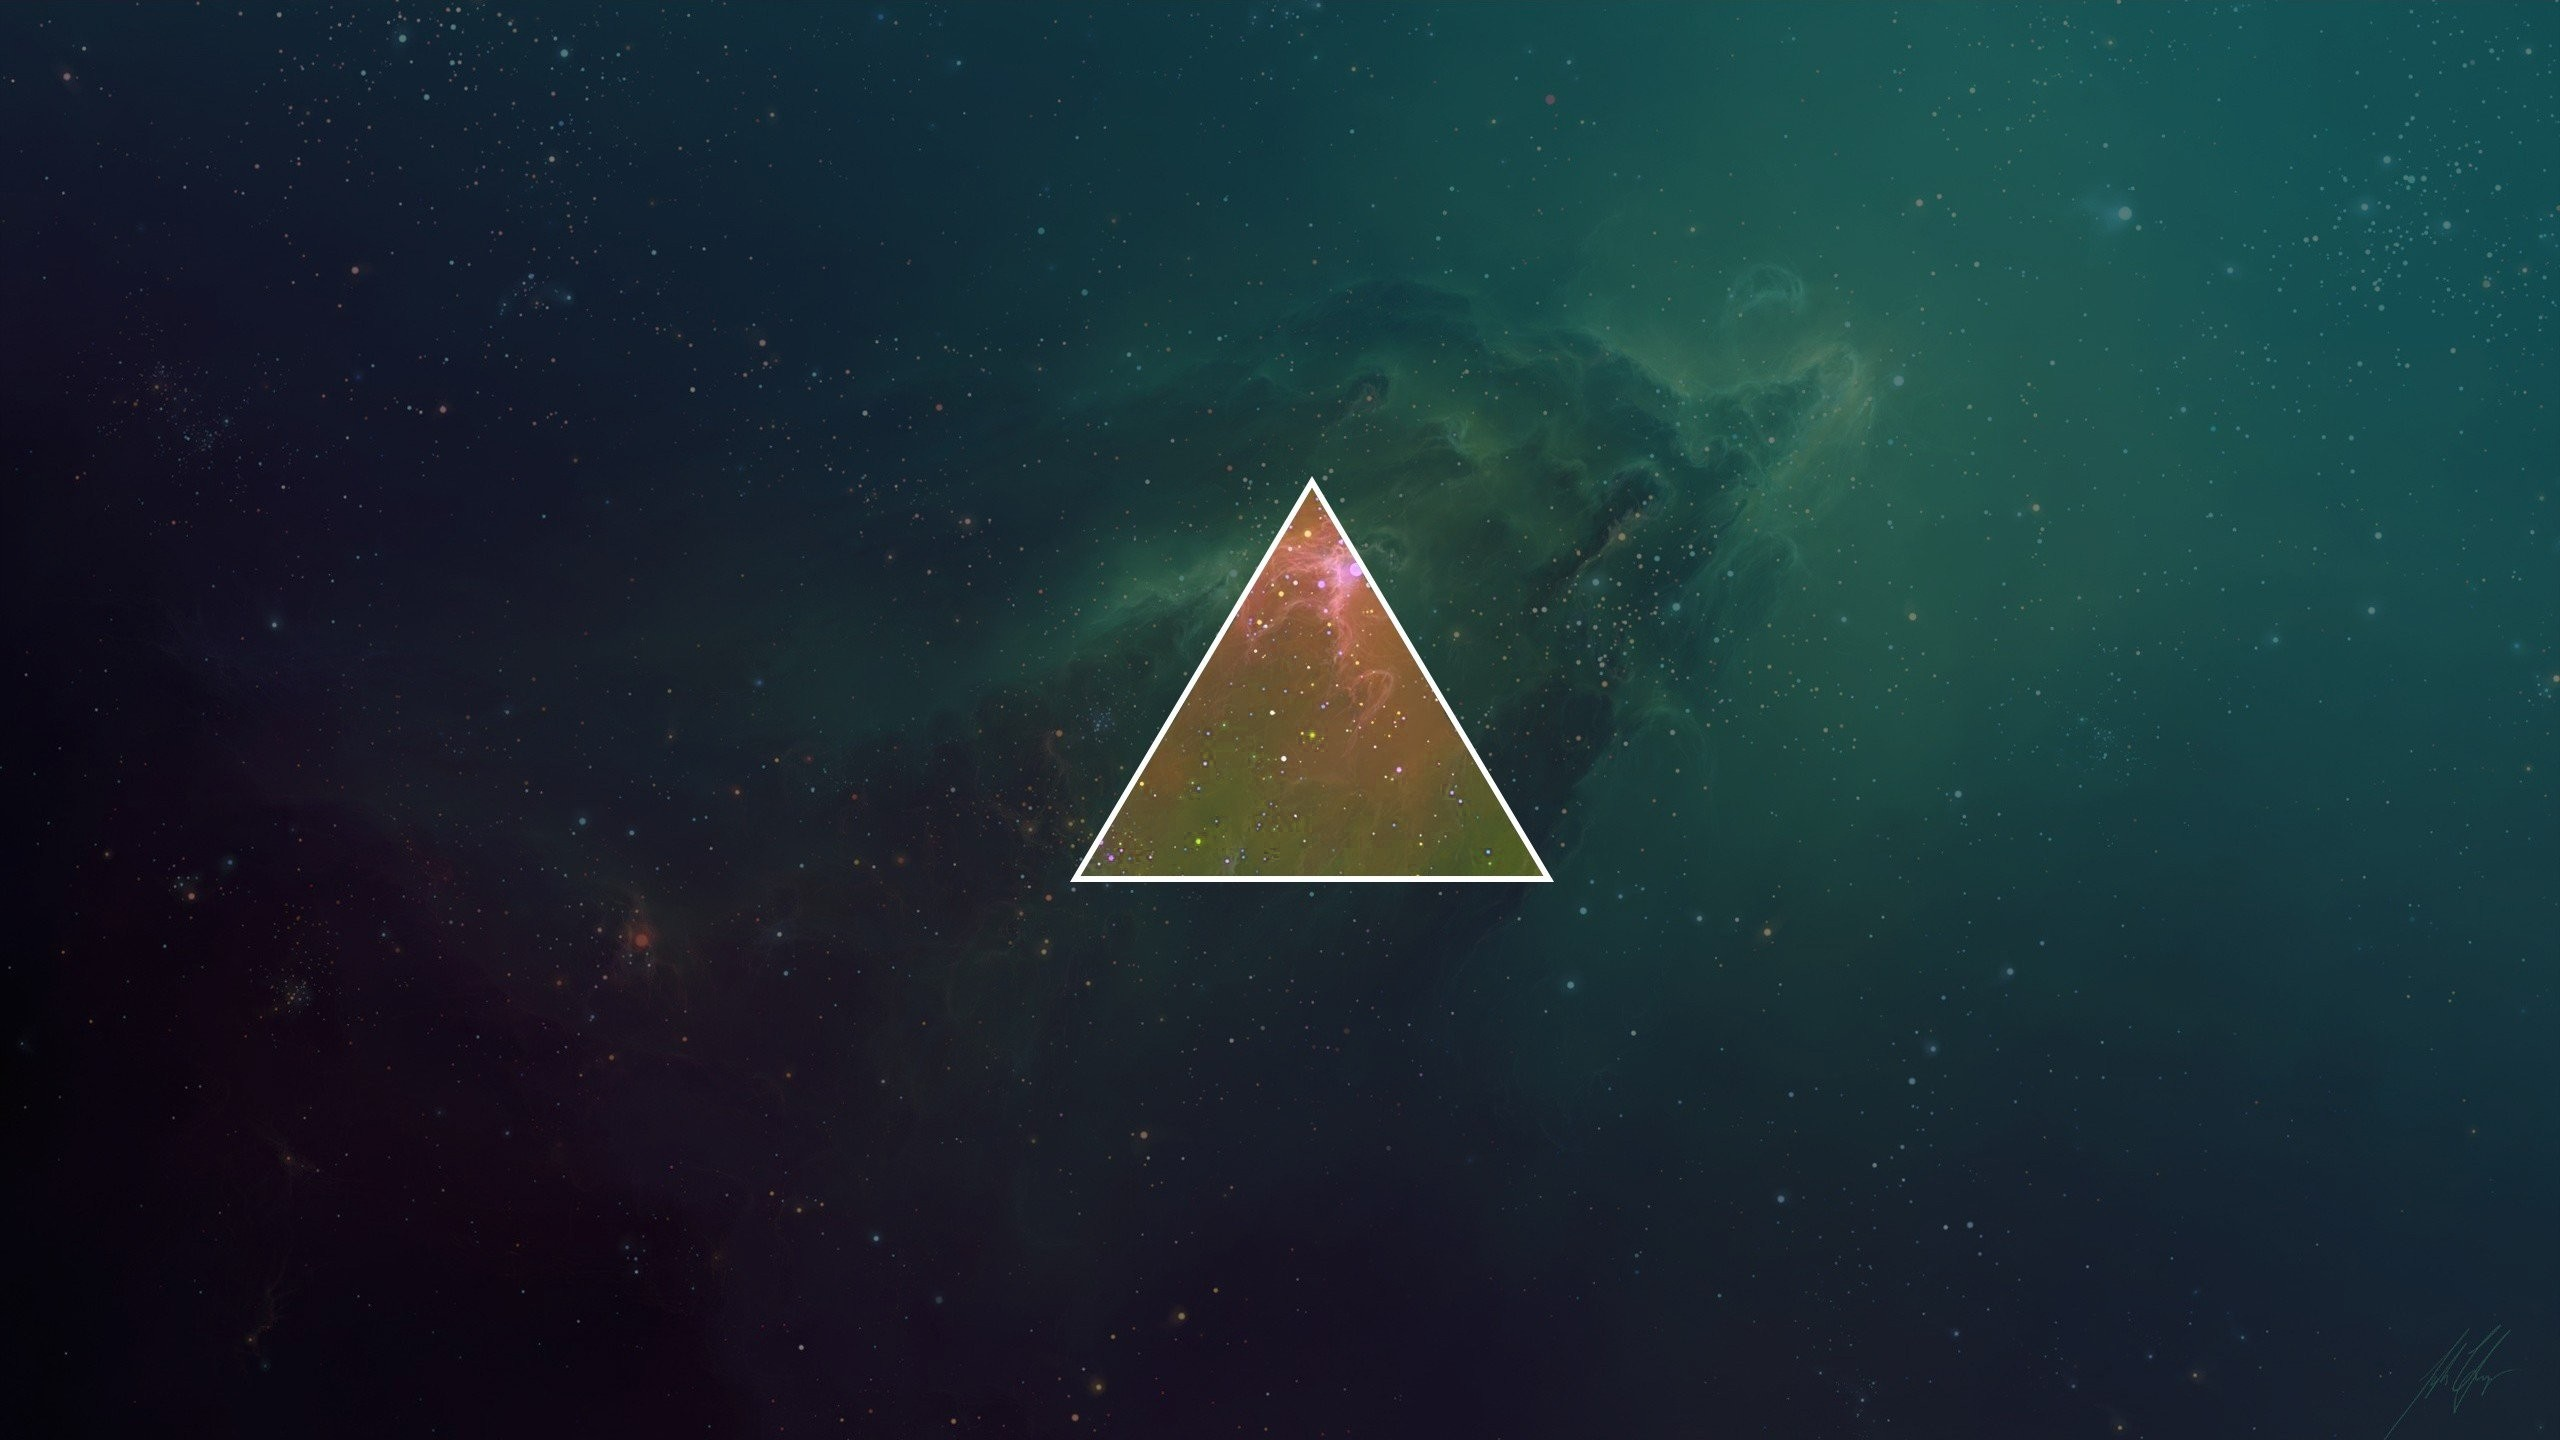 Hipster galaxy wallpaper 68 images 2560x1440 galaxy triangles skies hipster photography minimalism free iphone or android full hd wallpaper voltagebd Images